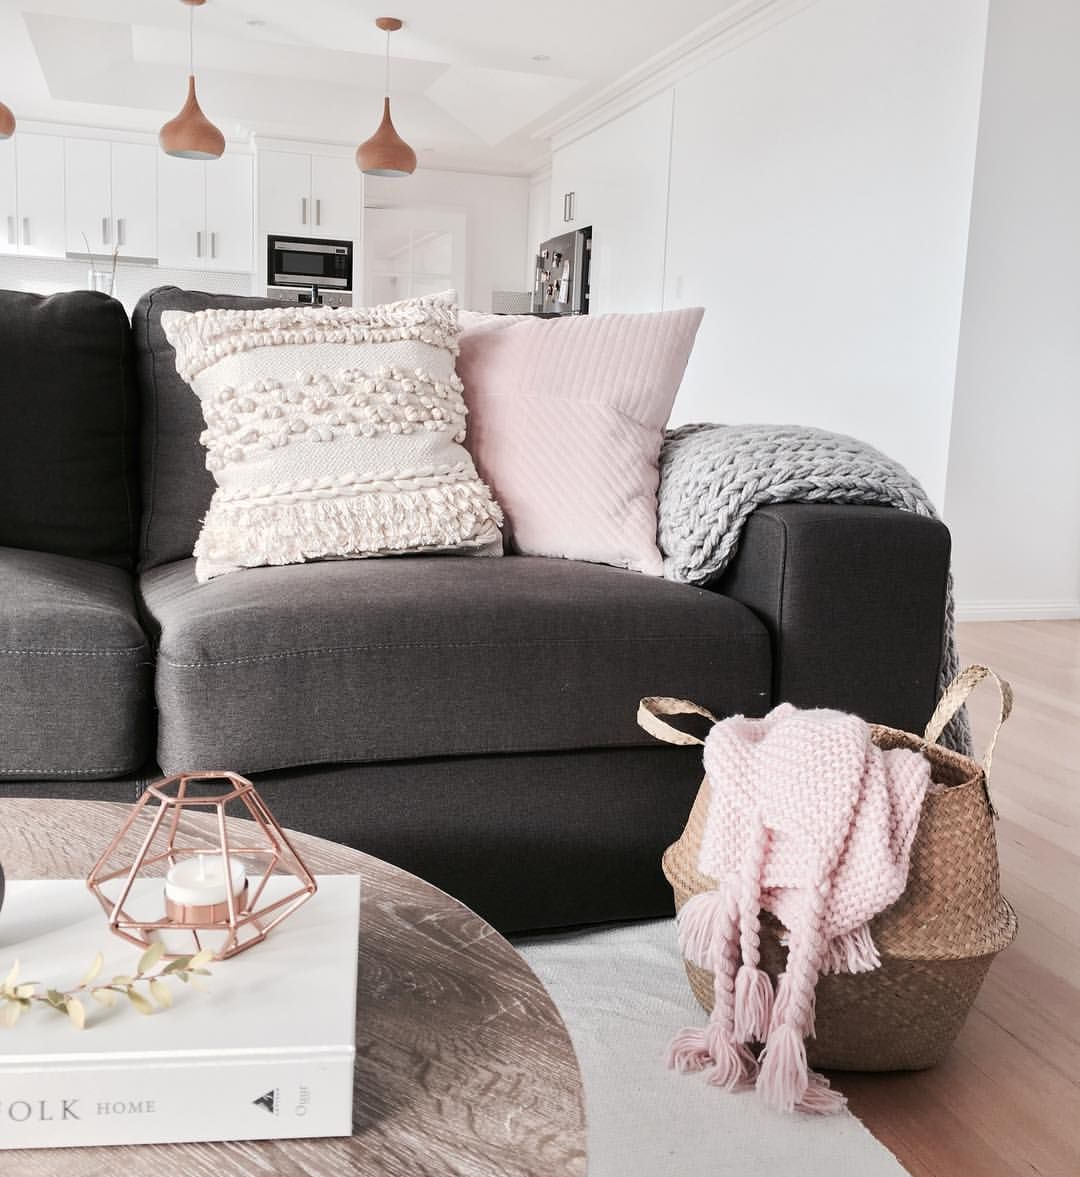 Stylingbytiffany On Instagram Living Space Couch Pastel Tones Scandi Boho